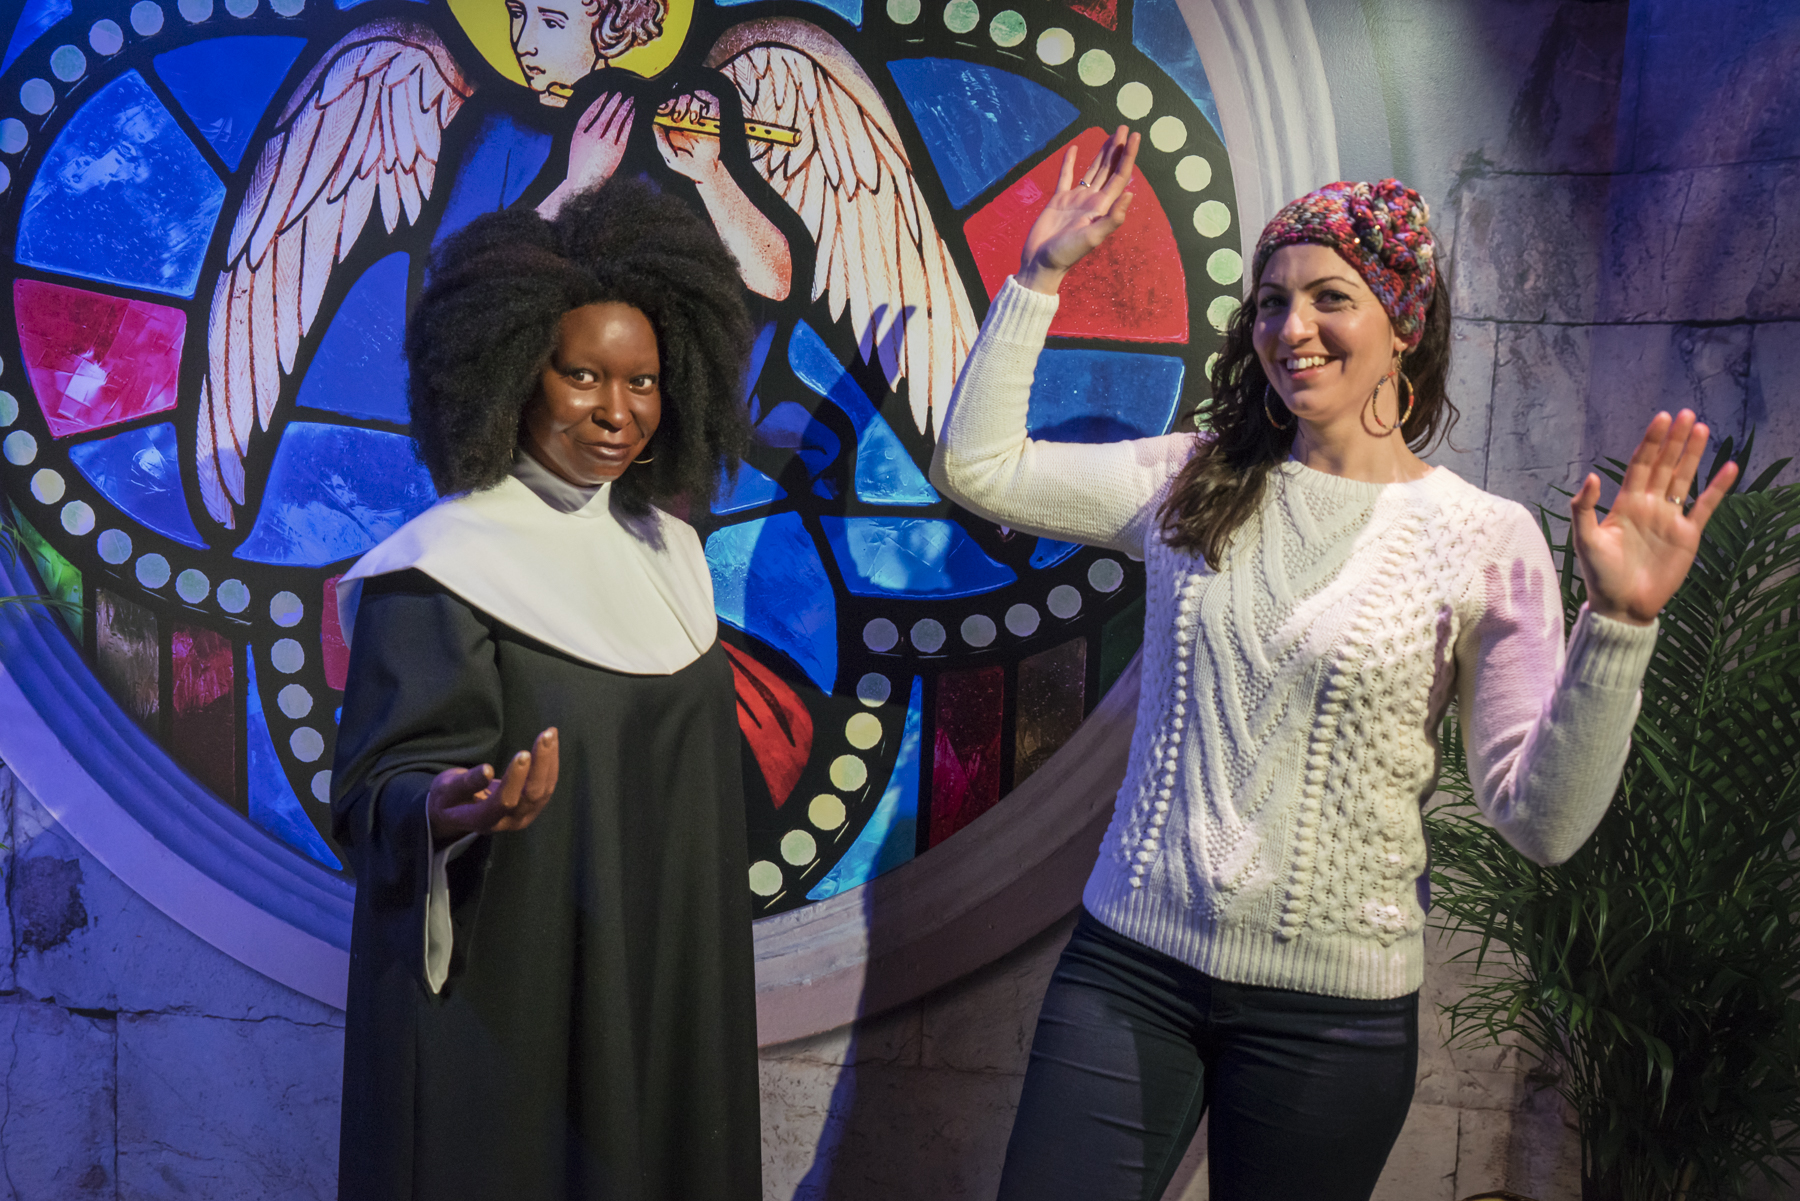 Whoopie Goldberg at Madame Tussauds wax museum